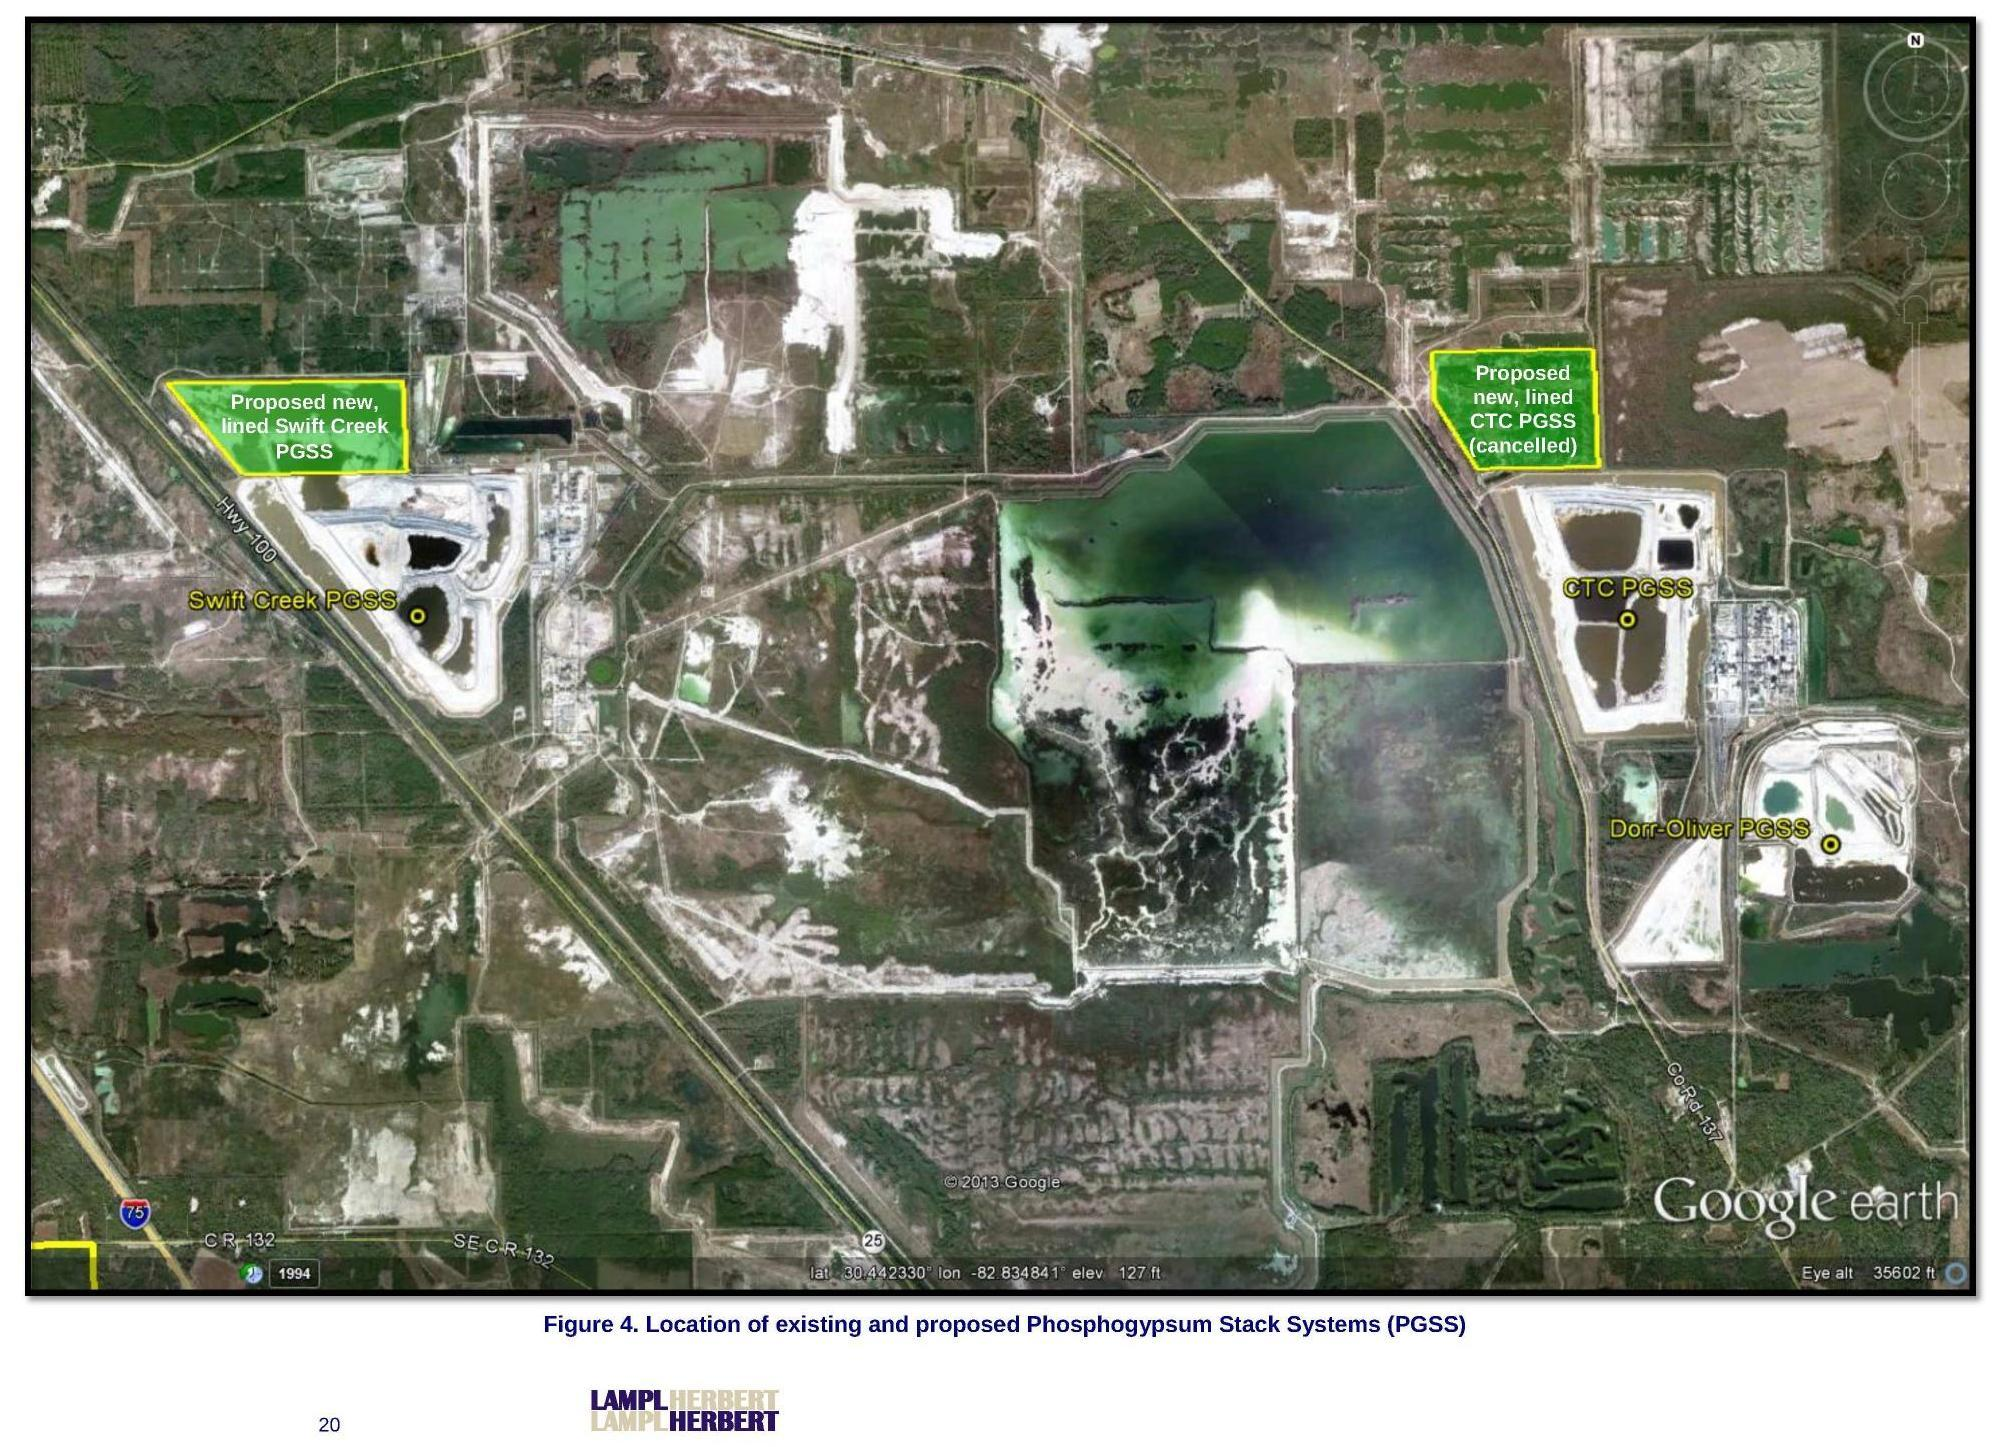 2003x1447 Figure 4. Location of existing and proposed Phosphogypsum Stack Systems (PGSS), Map, in FINAL REPORT Review of PCS Phosphate â?? White Springs, by Lampl-Herbert, 23 February 2018